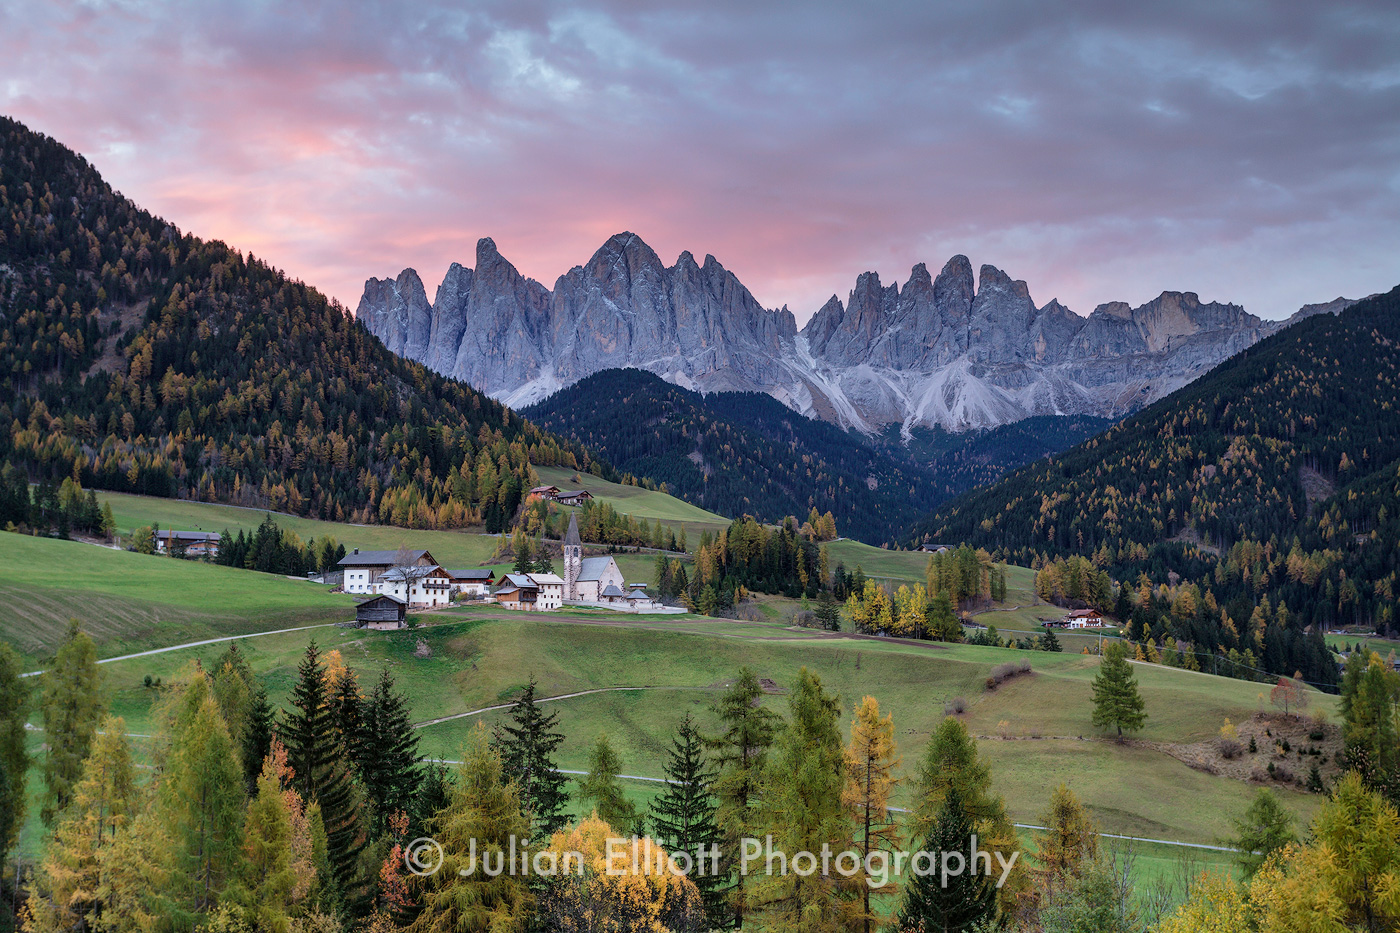 Santa Maddalena Alta and the Val di Funes in the Dolomites, Italy.